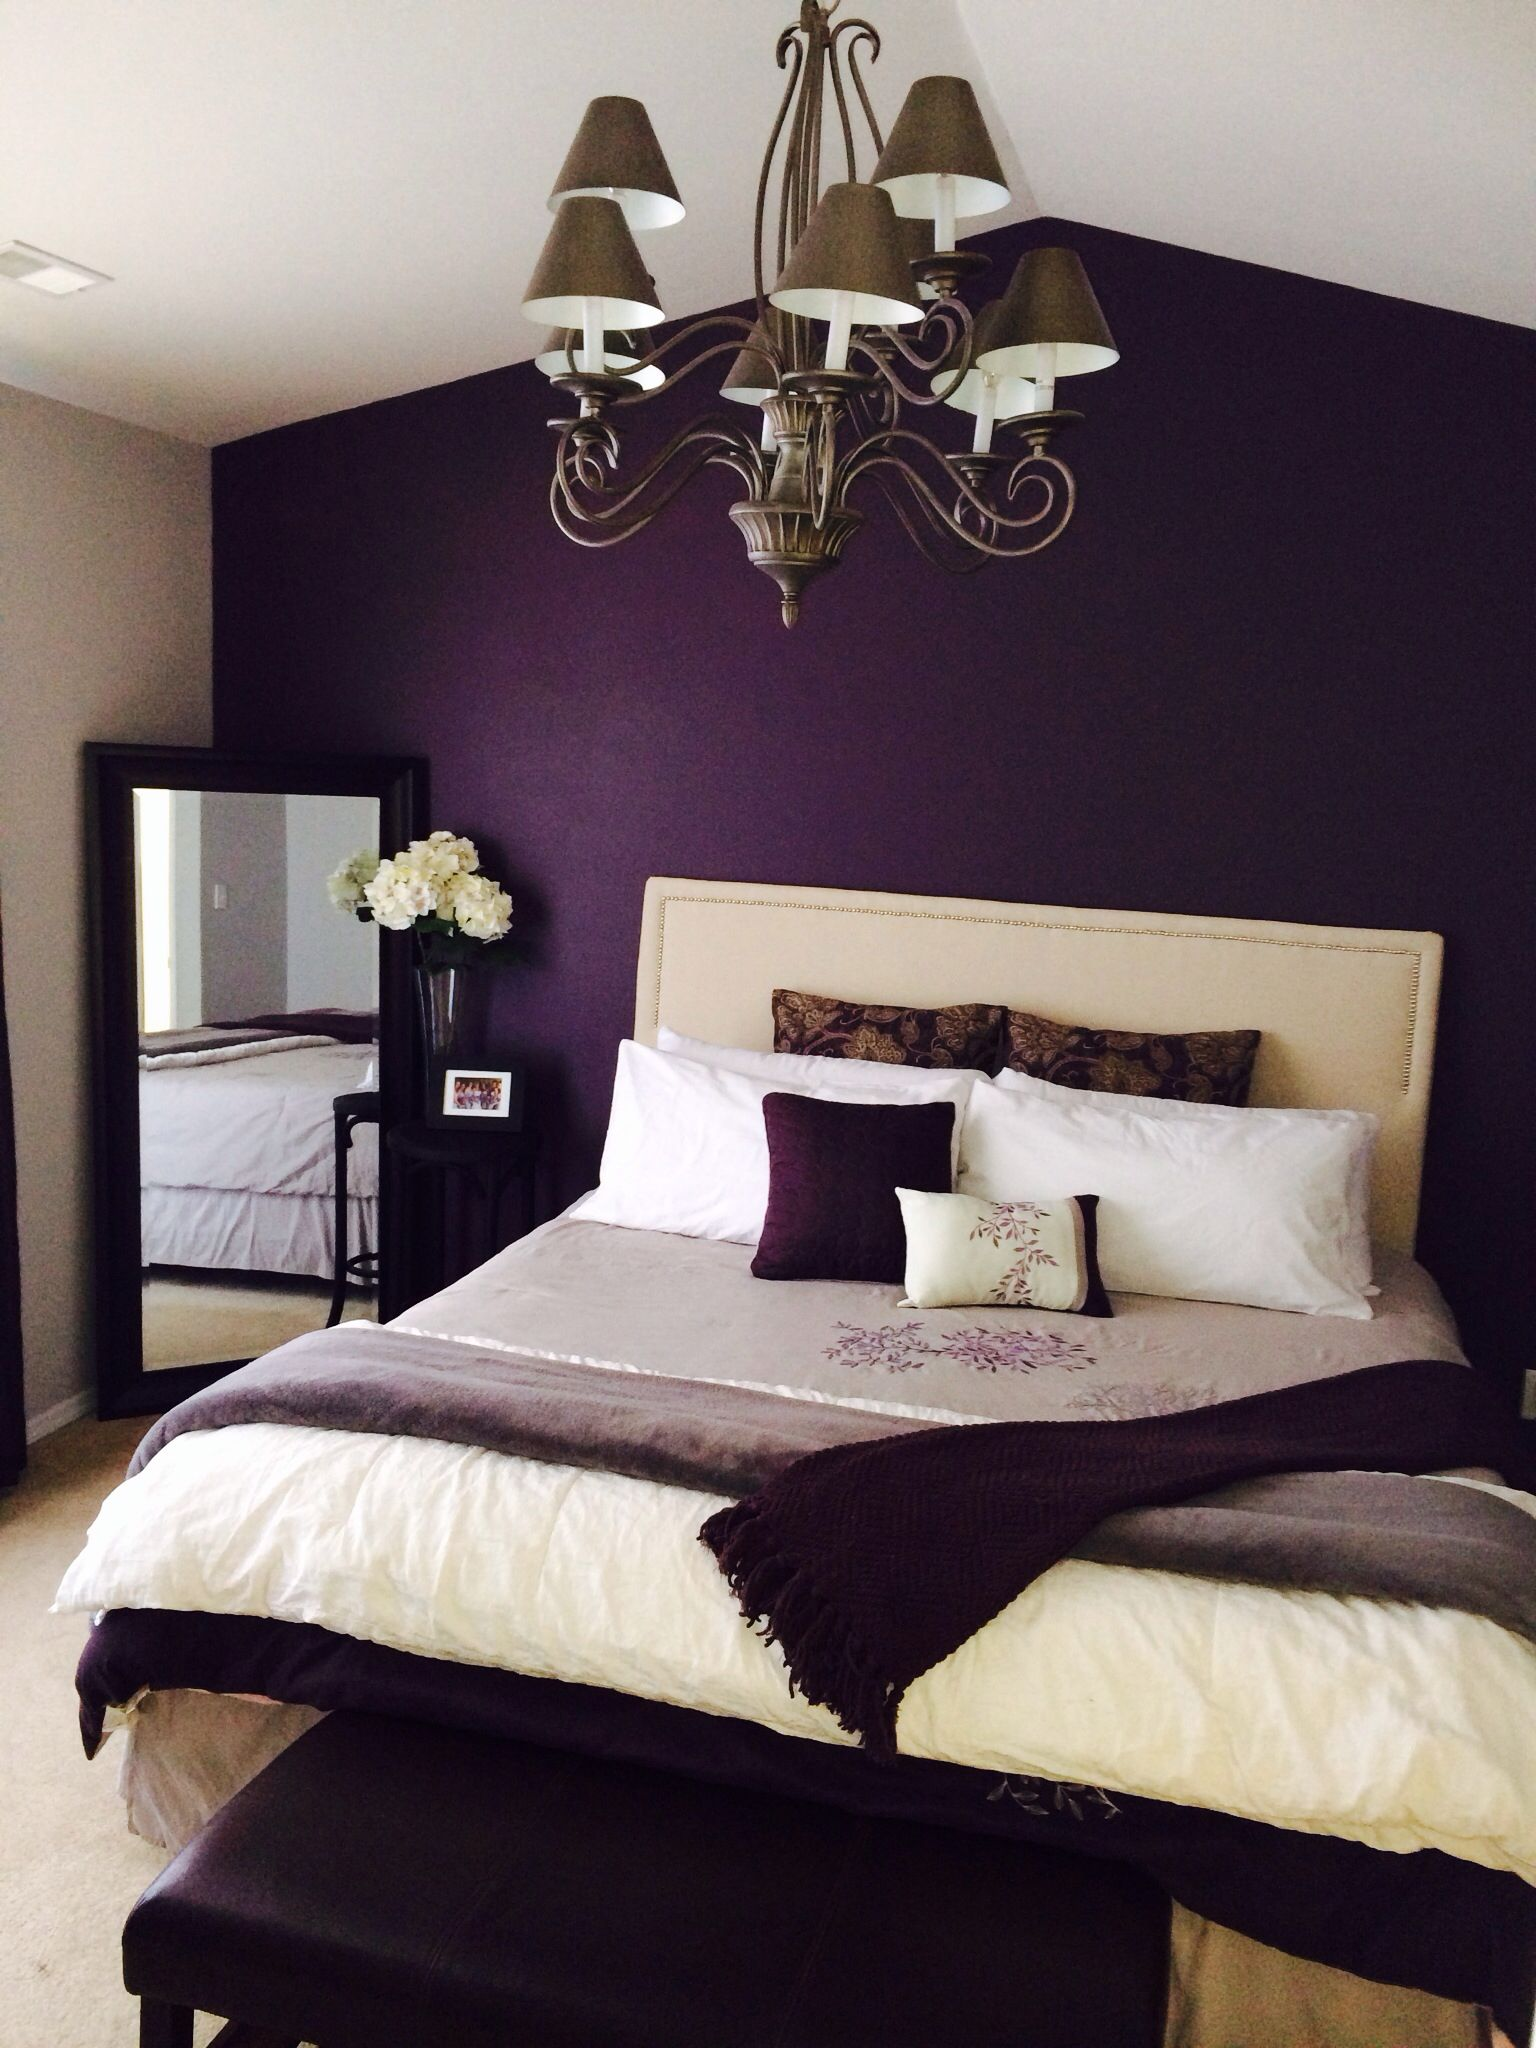 Romantic master bedroom paint ideas - Latest 30 Romantic Bedroom Ideas To Make The Love Happen